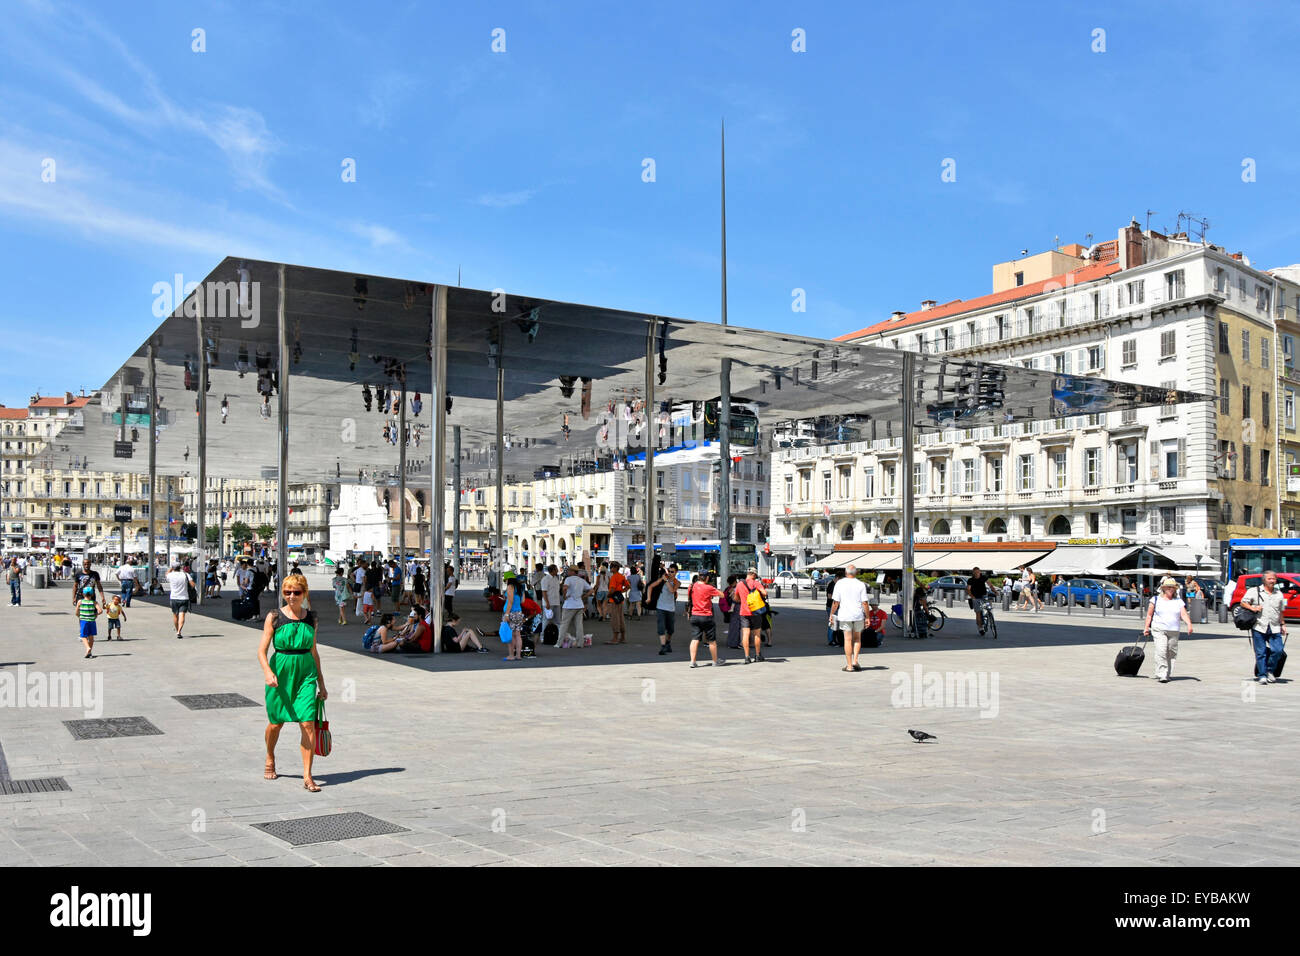 Marseille France Vieux Port metro station sign & Ombriere mirror with people & image reflections under Norman - Stock Image